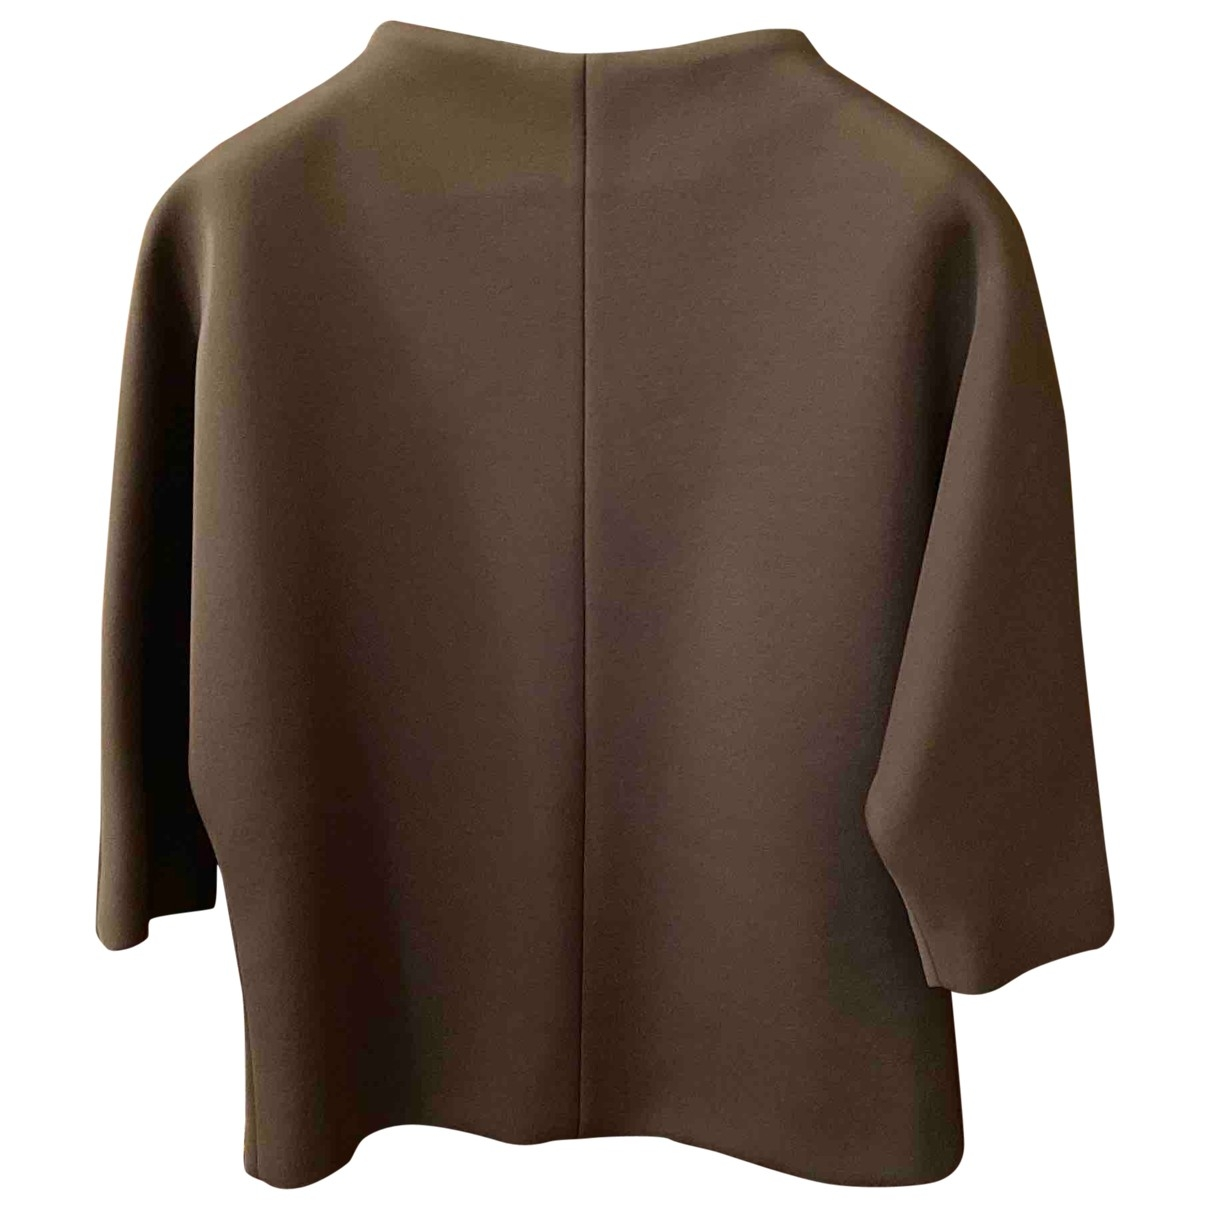 Marni \N Khaki Knitwear for Women 40 IT